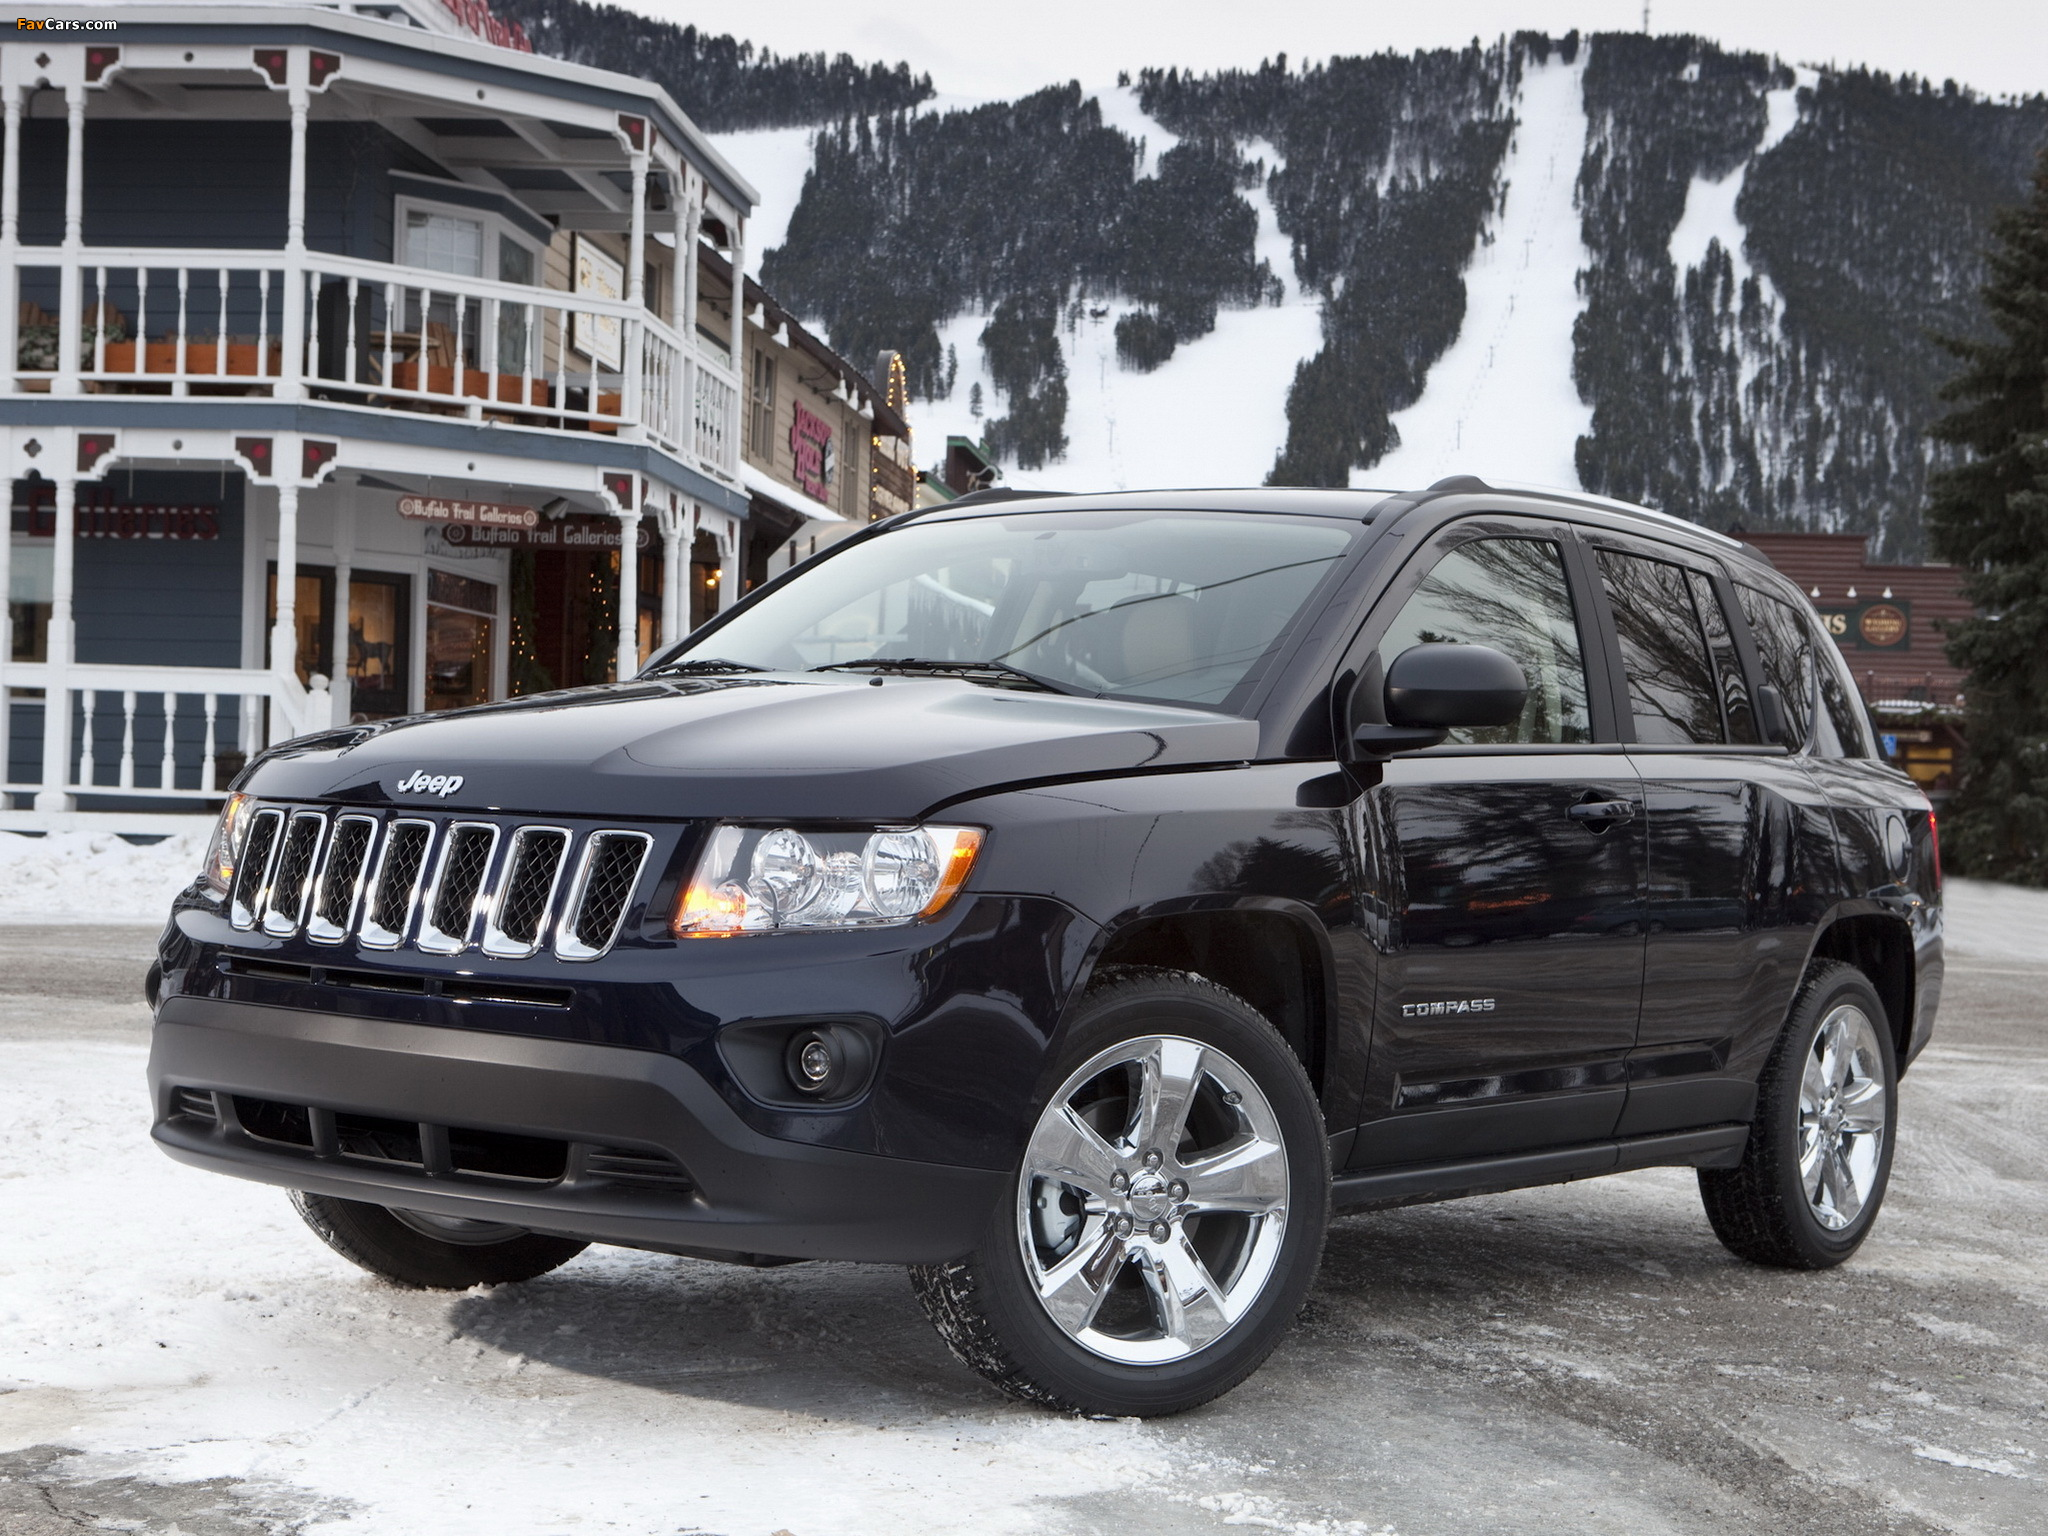 Jeep Compass 2010 wallpapers (2048 x 1536)